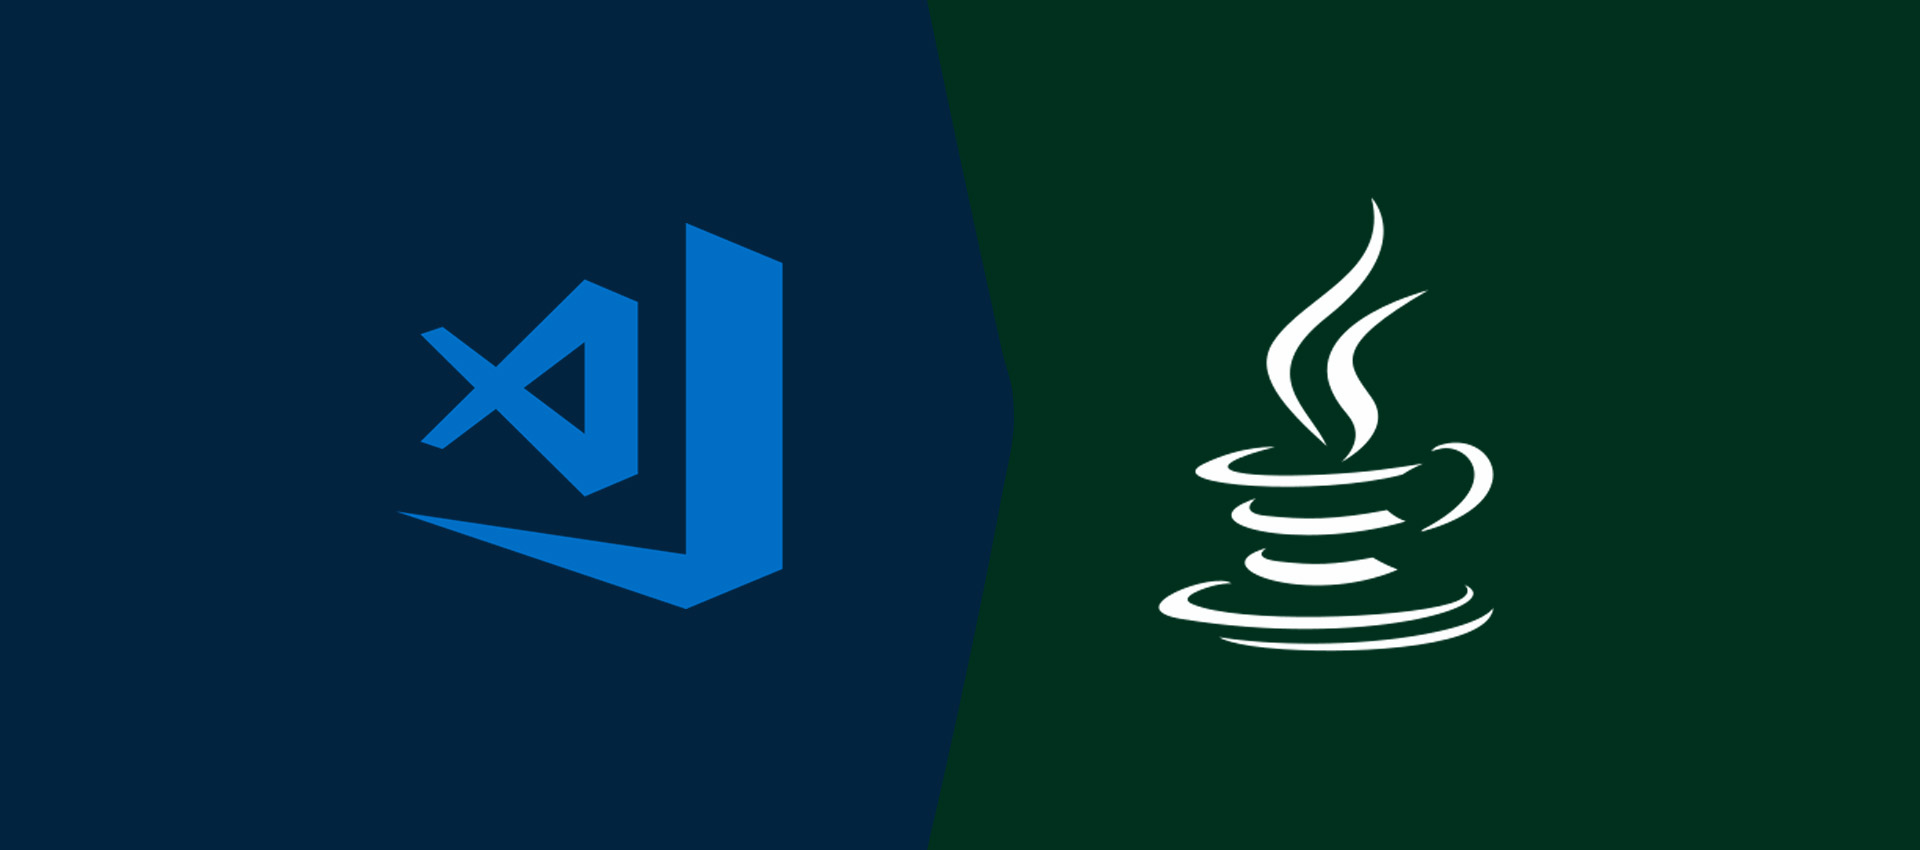 How To Install VSCode For Java On Ubuntu